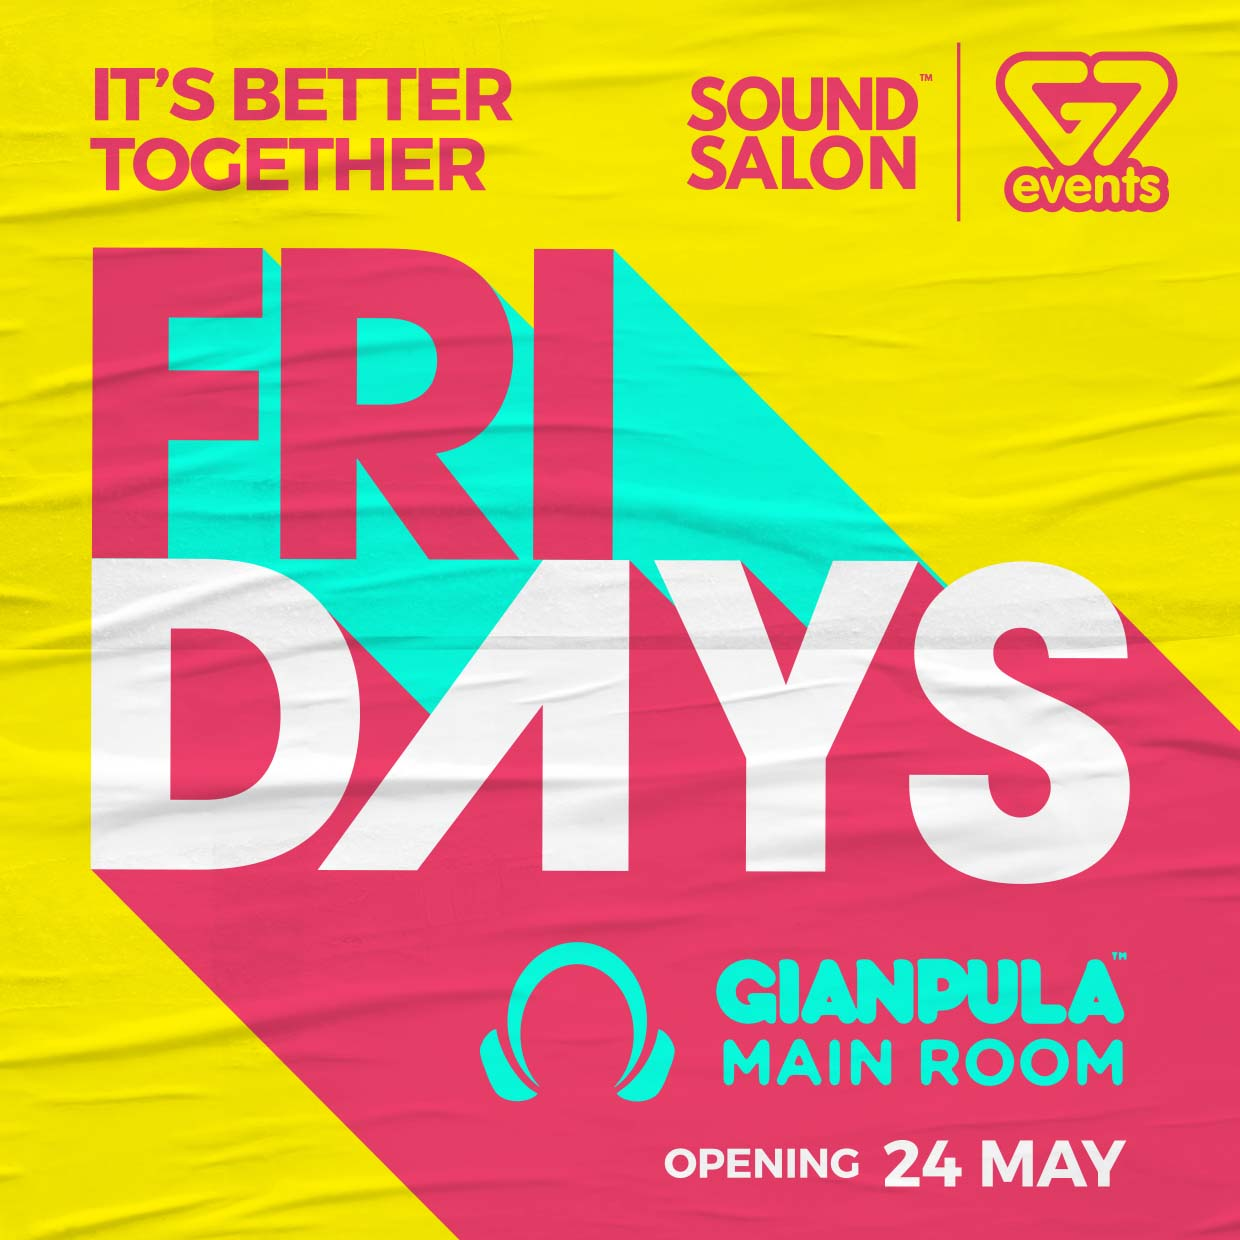 G7 Events & Sound Salon - Fridays